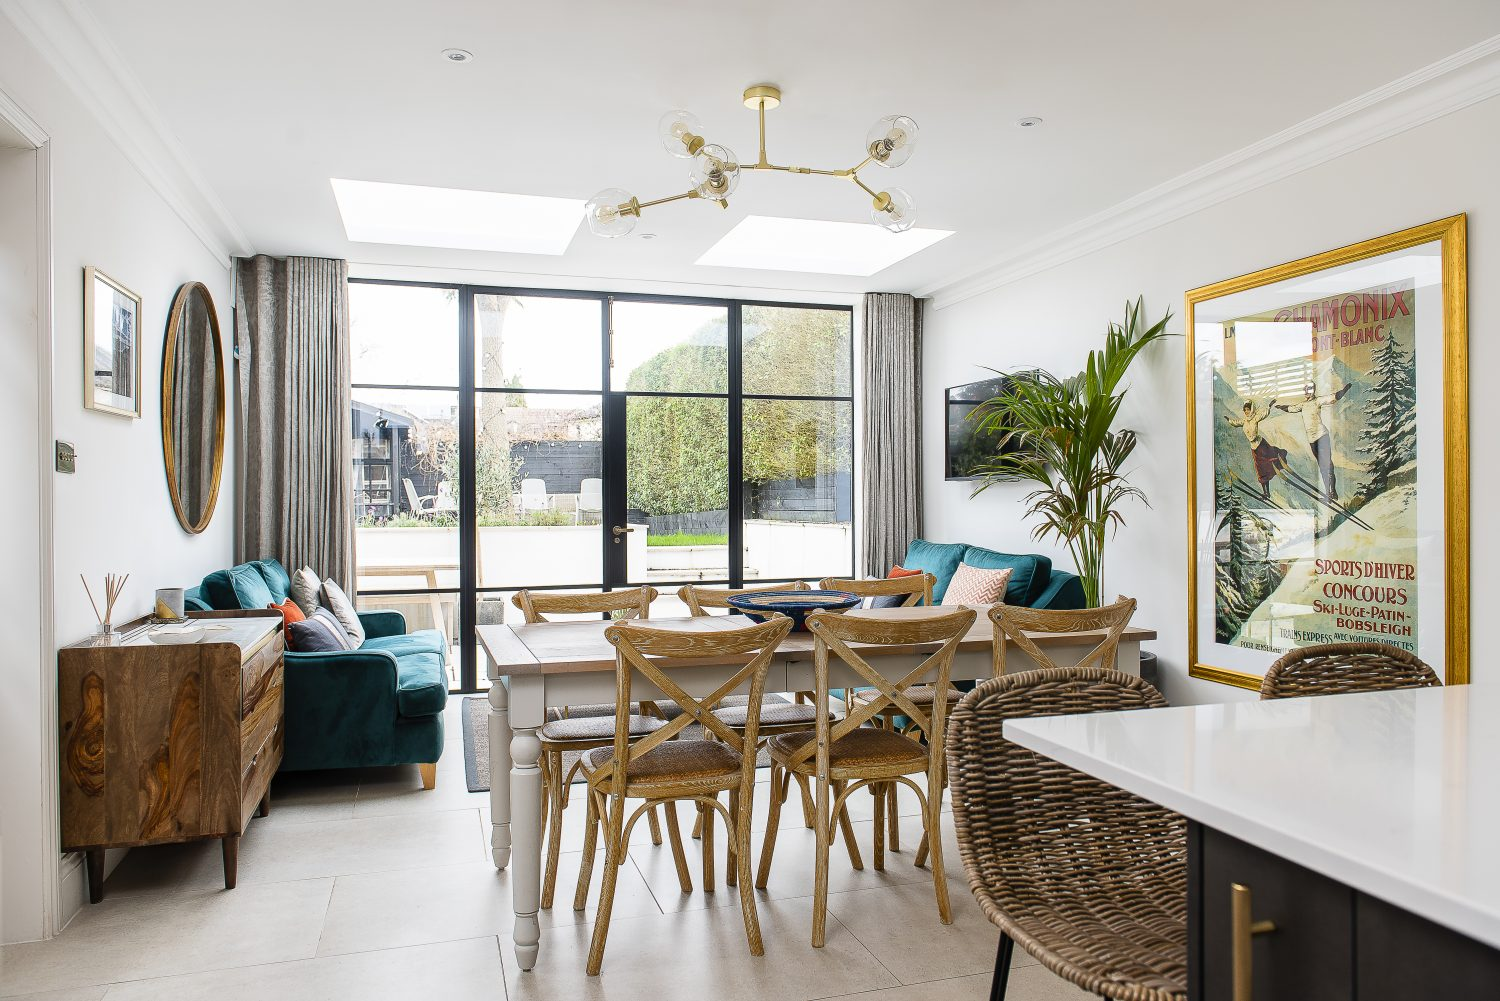 Crittall-style doors by Fabco Sanctuary lead out from the dining room into the raised garden. The amazing gold and glass light over the dining table is by Lindsey Adelman